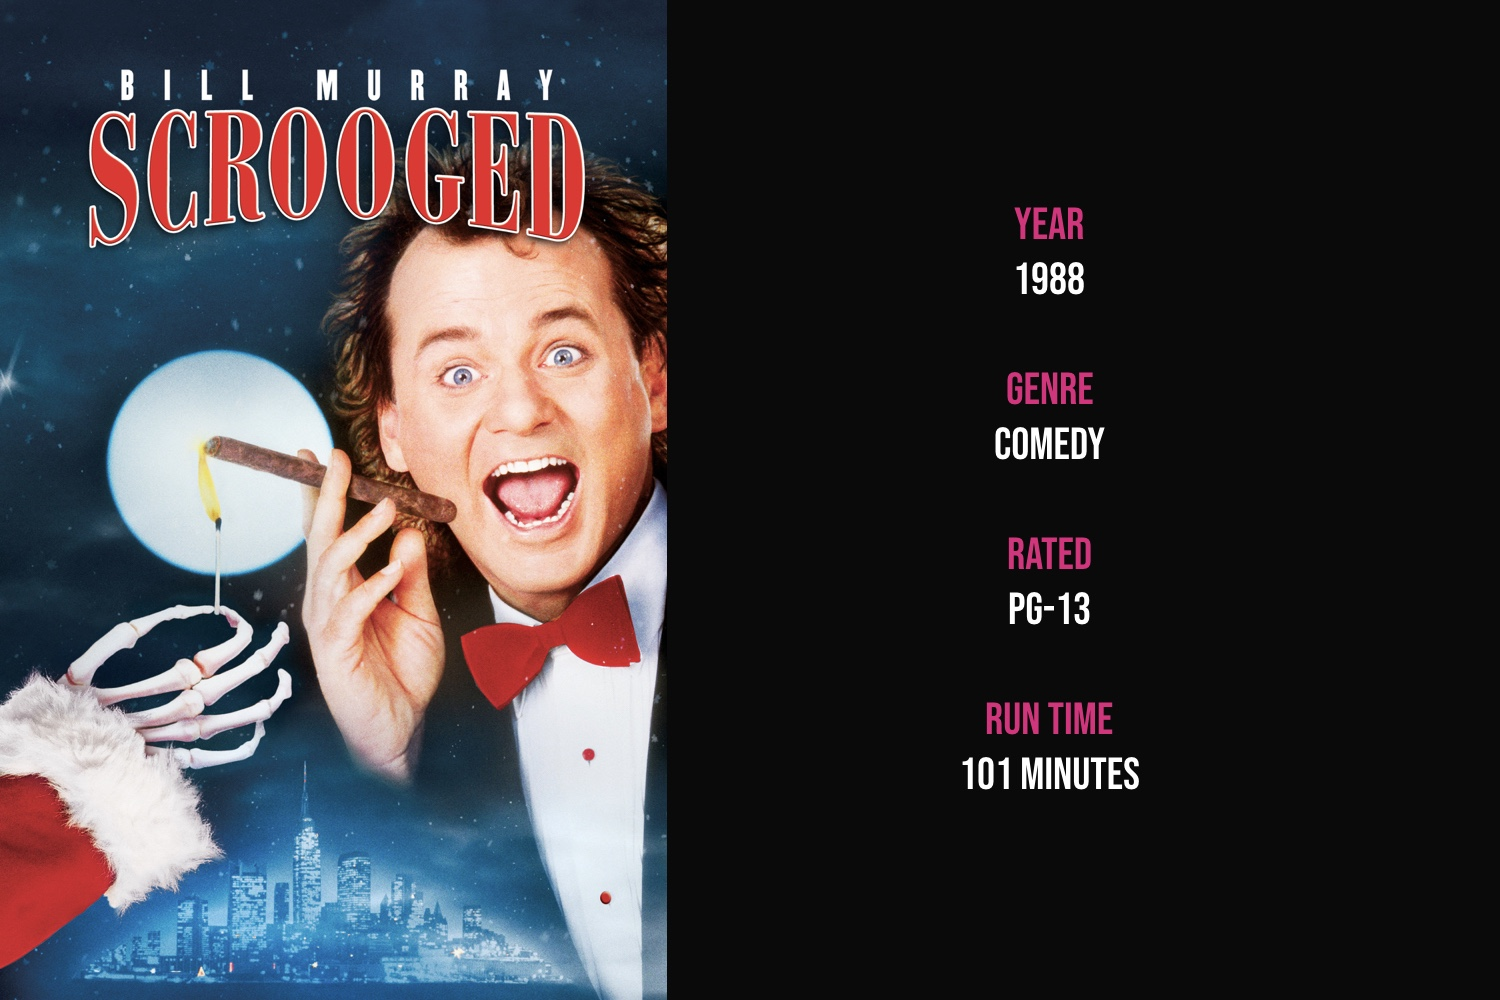 Scrooged - This hilarious retelling of A Christmas Carol portrays a cold-hearted and mean-spirited network television president who's visited by 3 ghosts on Christmas Eve for a journey through his past and future and a chance for redemption in the present.iTunes | Amazon